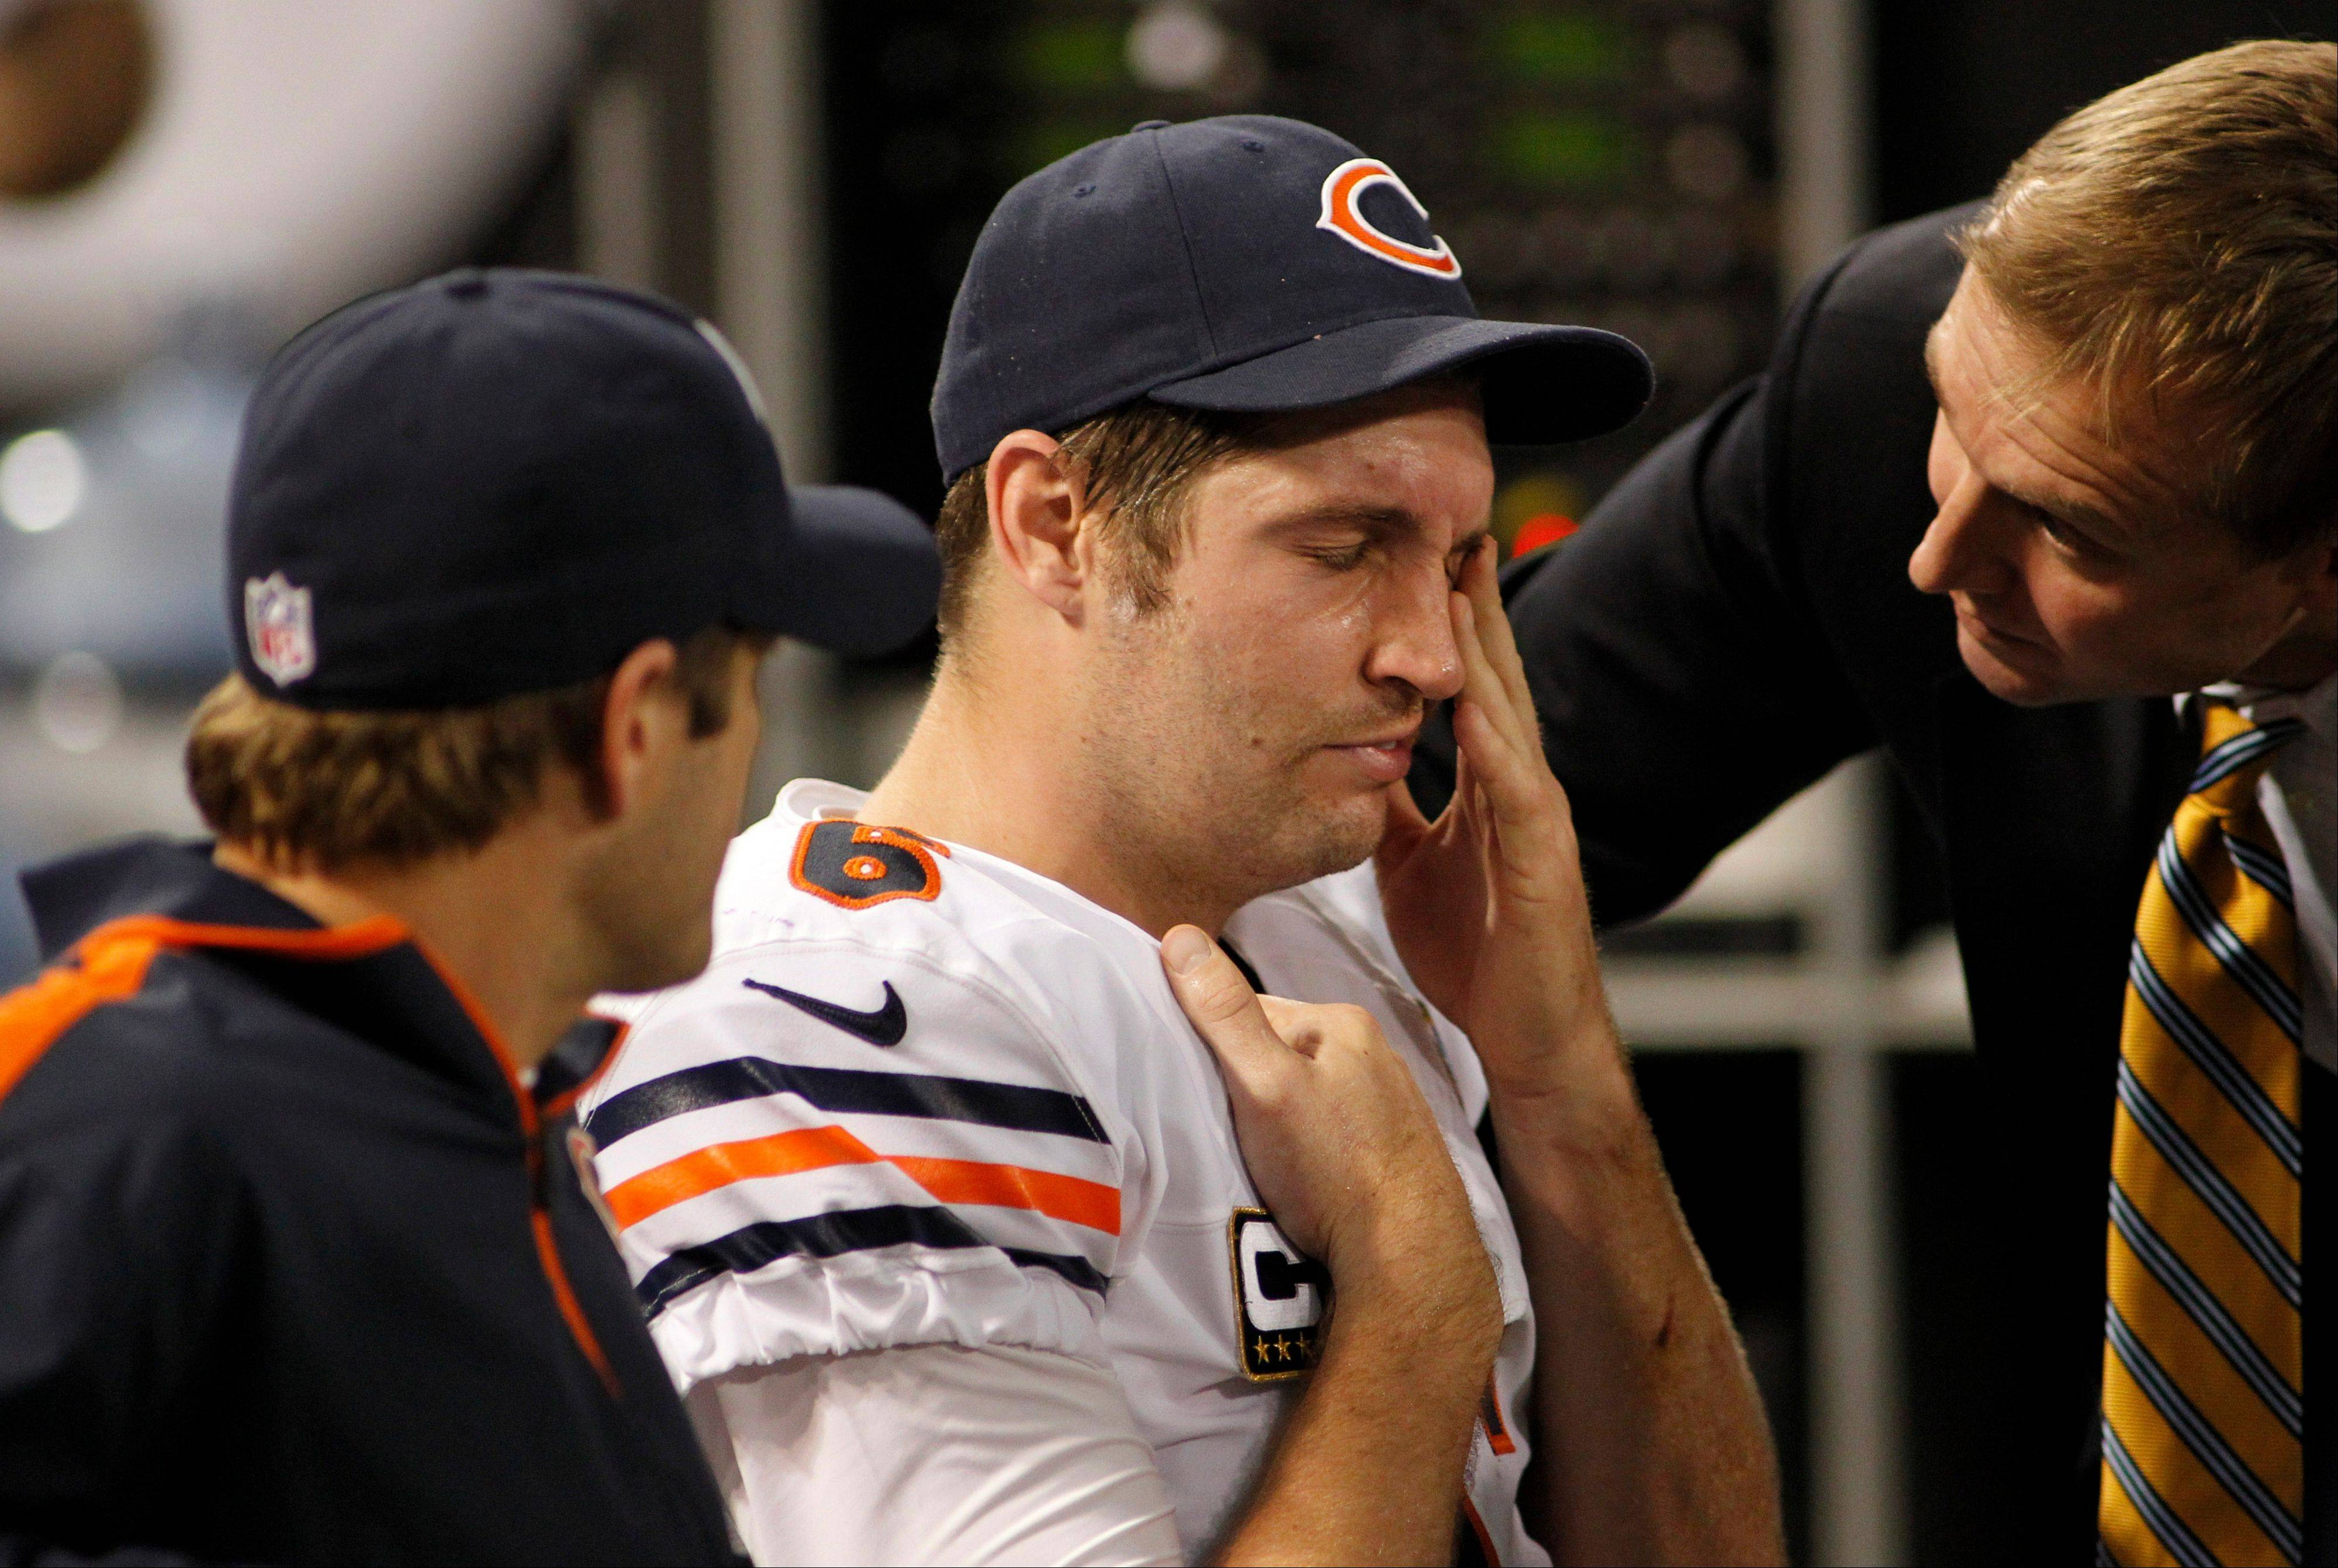 Chicago Bears quarterback Jay Cutler, center, reacts as he sits on the bench after getting injured during the second half.